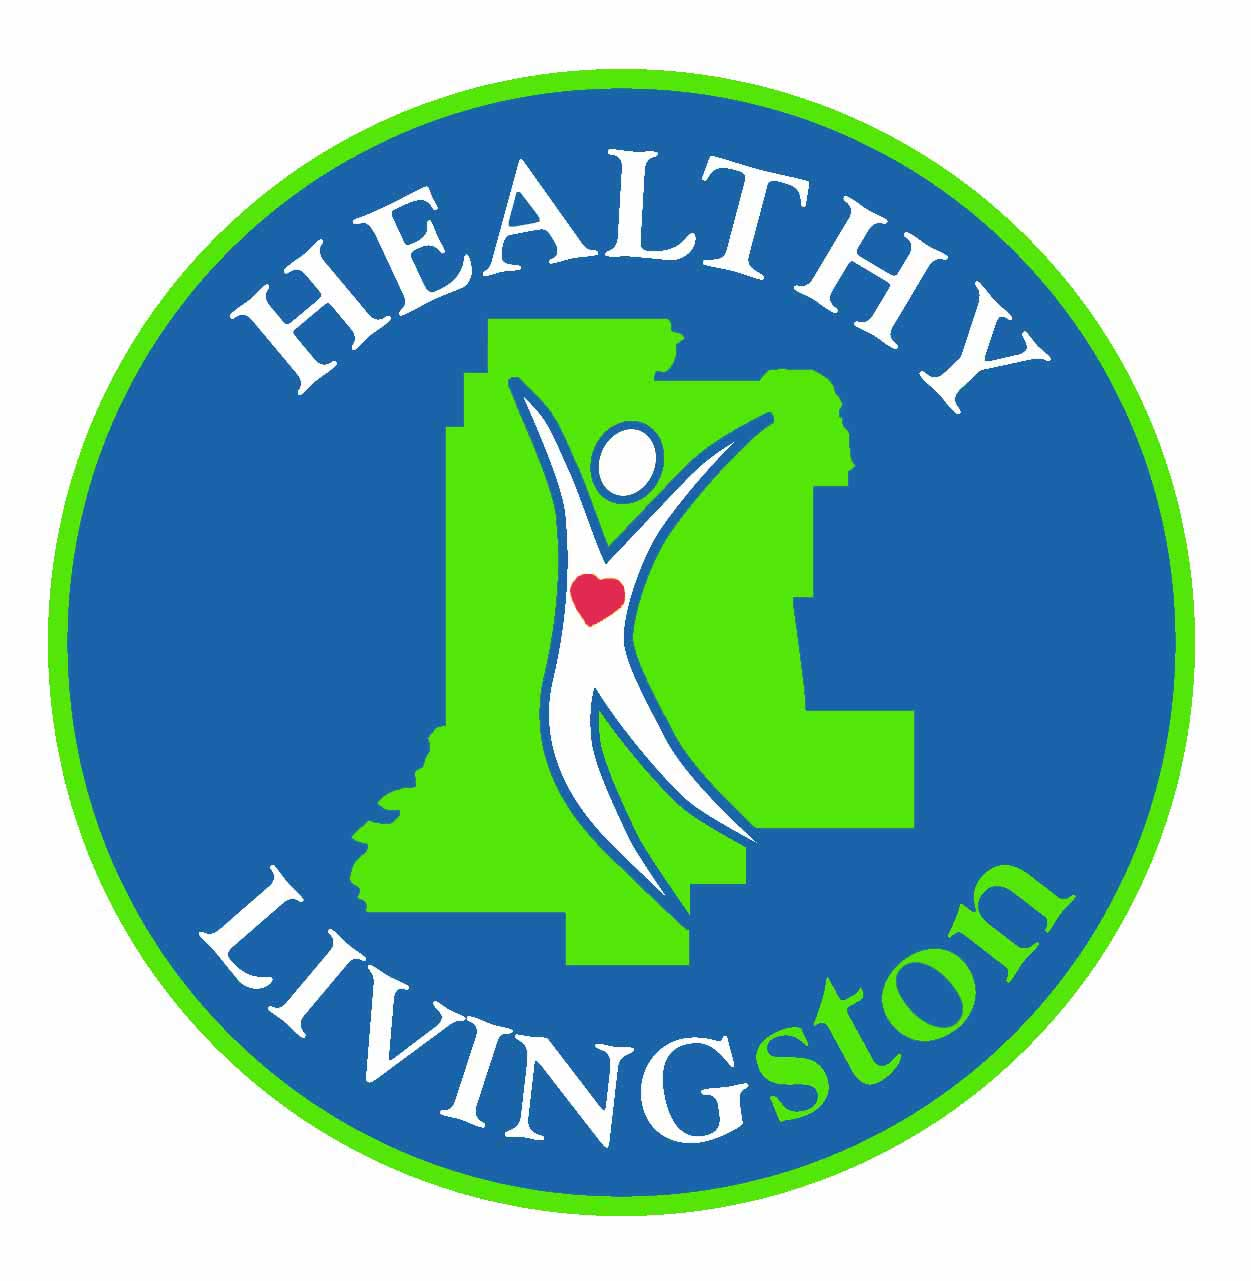 HEALTHY LIVINGston logo final copy4.jpg